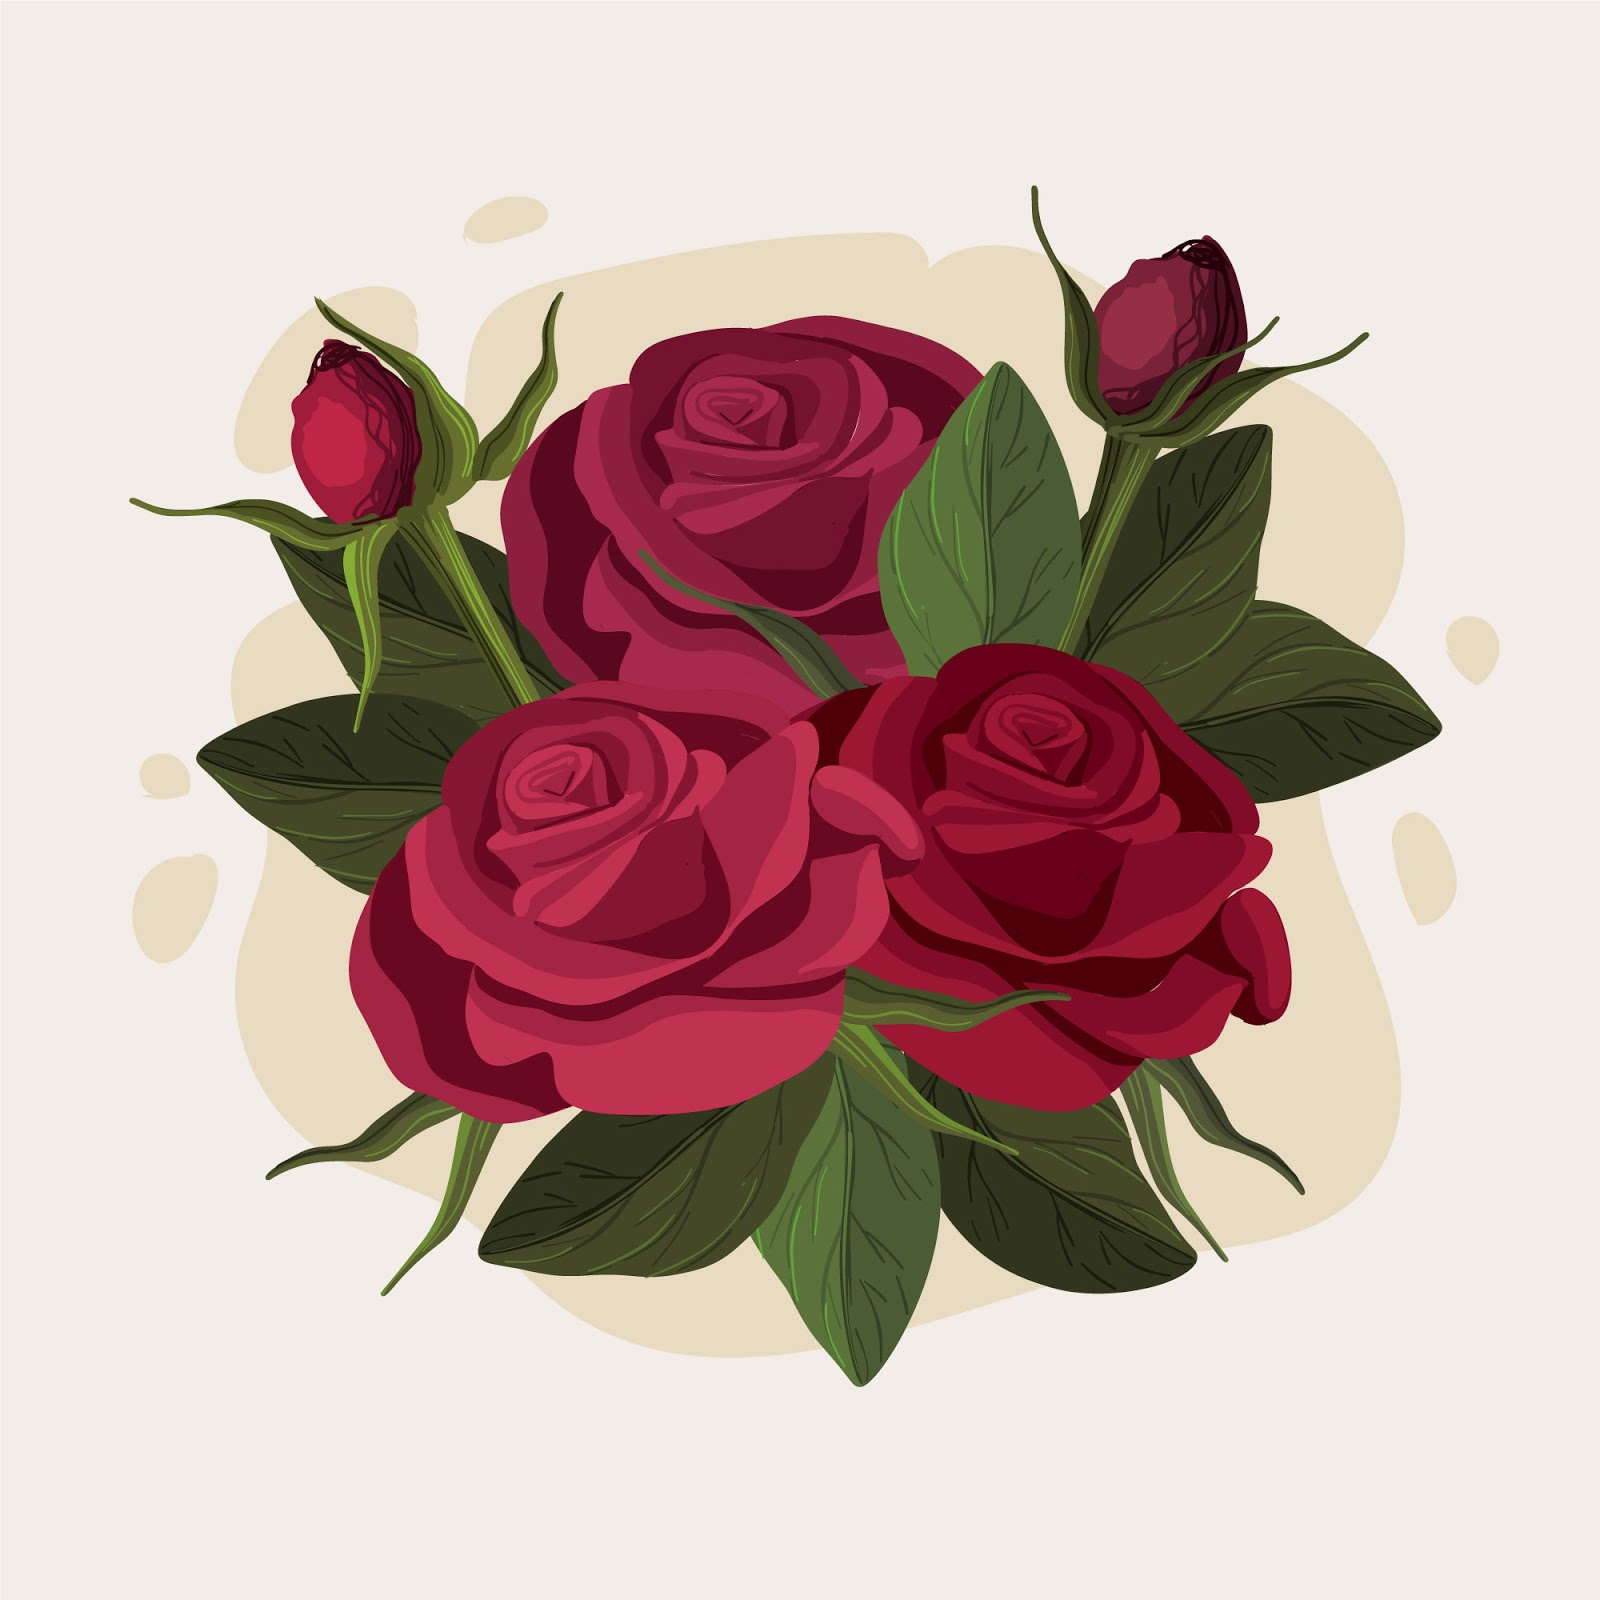 Beautiful Floral Bouquet Burgundy Roses Free Download Vector CDR, AI, EPS and PNG Formats